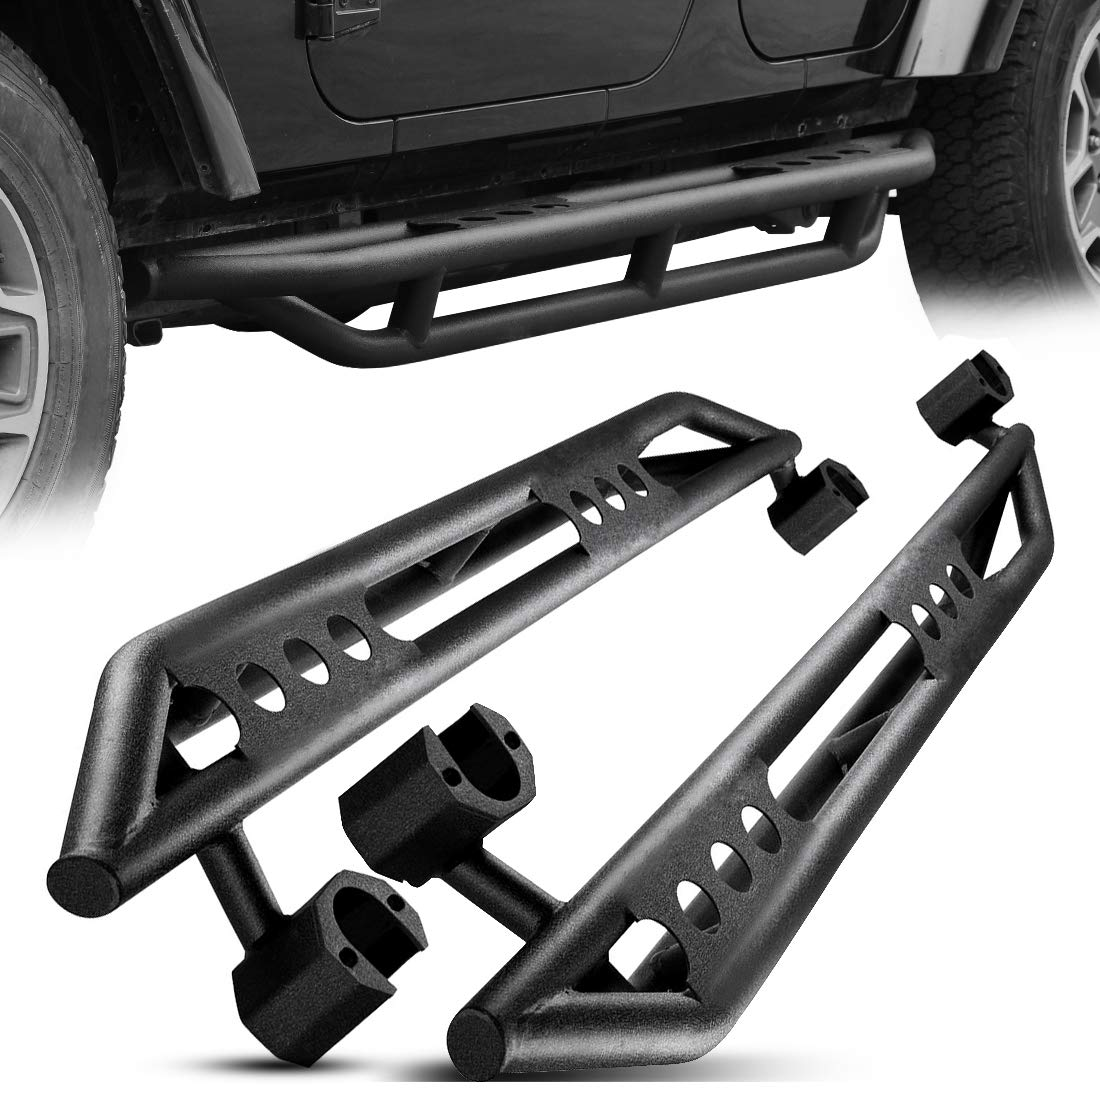 Powder Coating Finishing Side Steps Compatible for 2007-2018 Jeep Wrangler JK 4 Door Off-Road Black Textured Tubing Guard Rock Rails Kit AUTOSAVER88 Running Boards Nerf Bars Excl 2018 JL Models